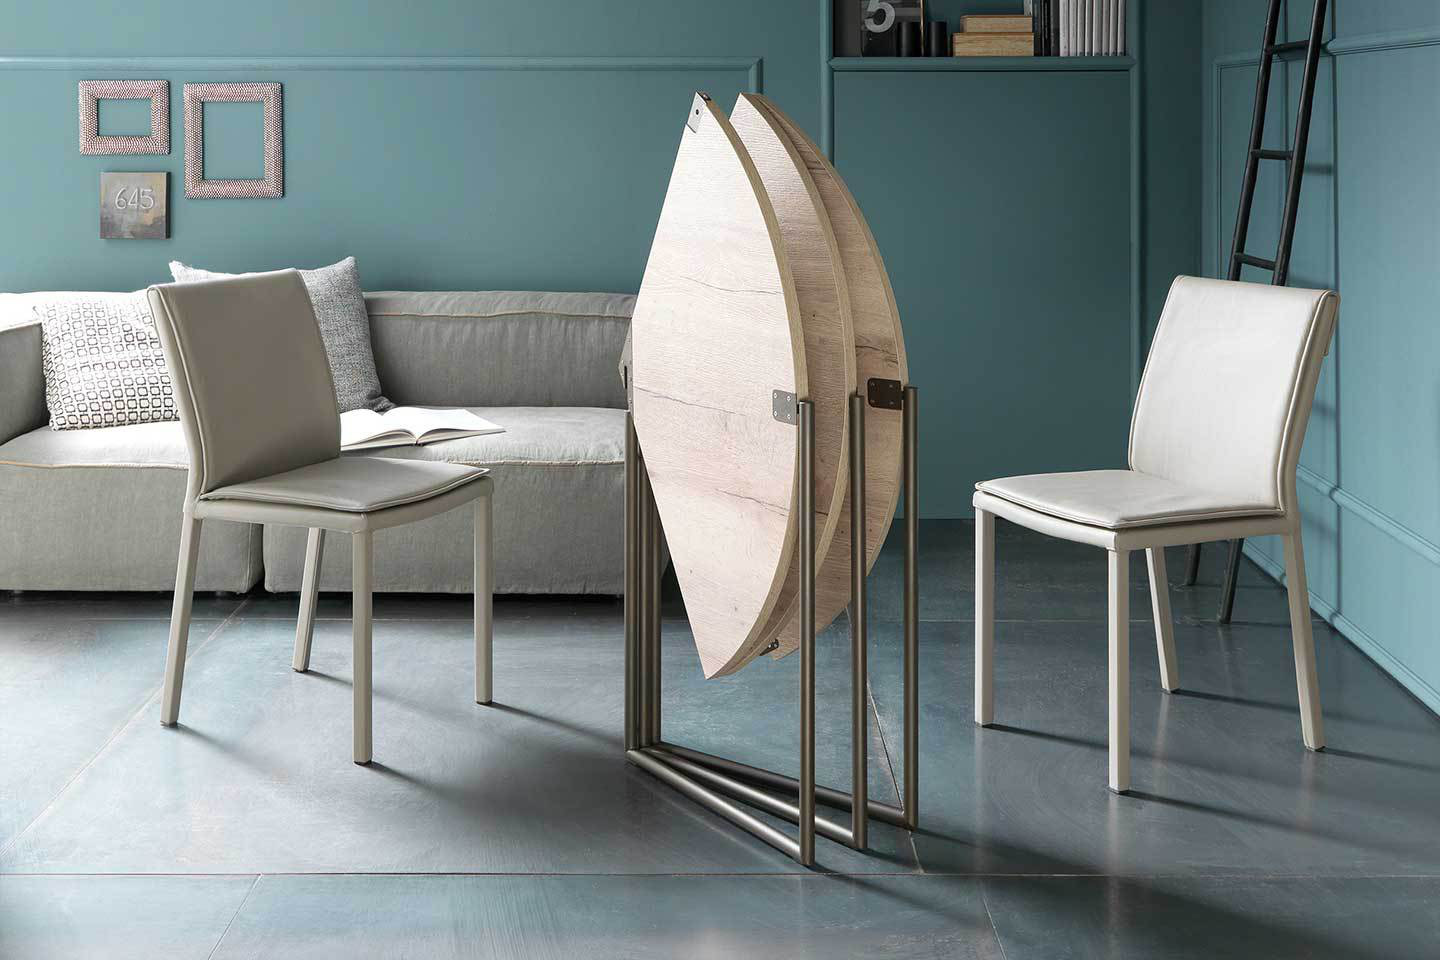 Mobili Italia_ALTACOM ICARO folding table